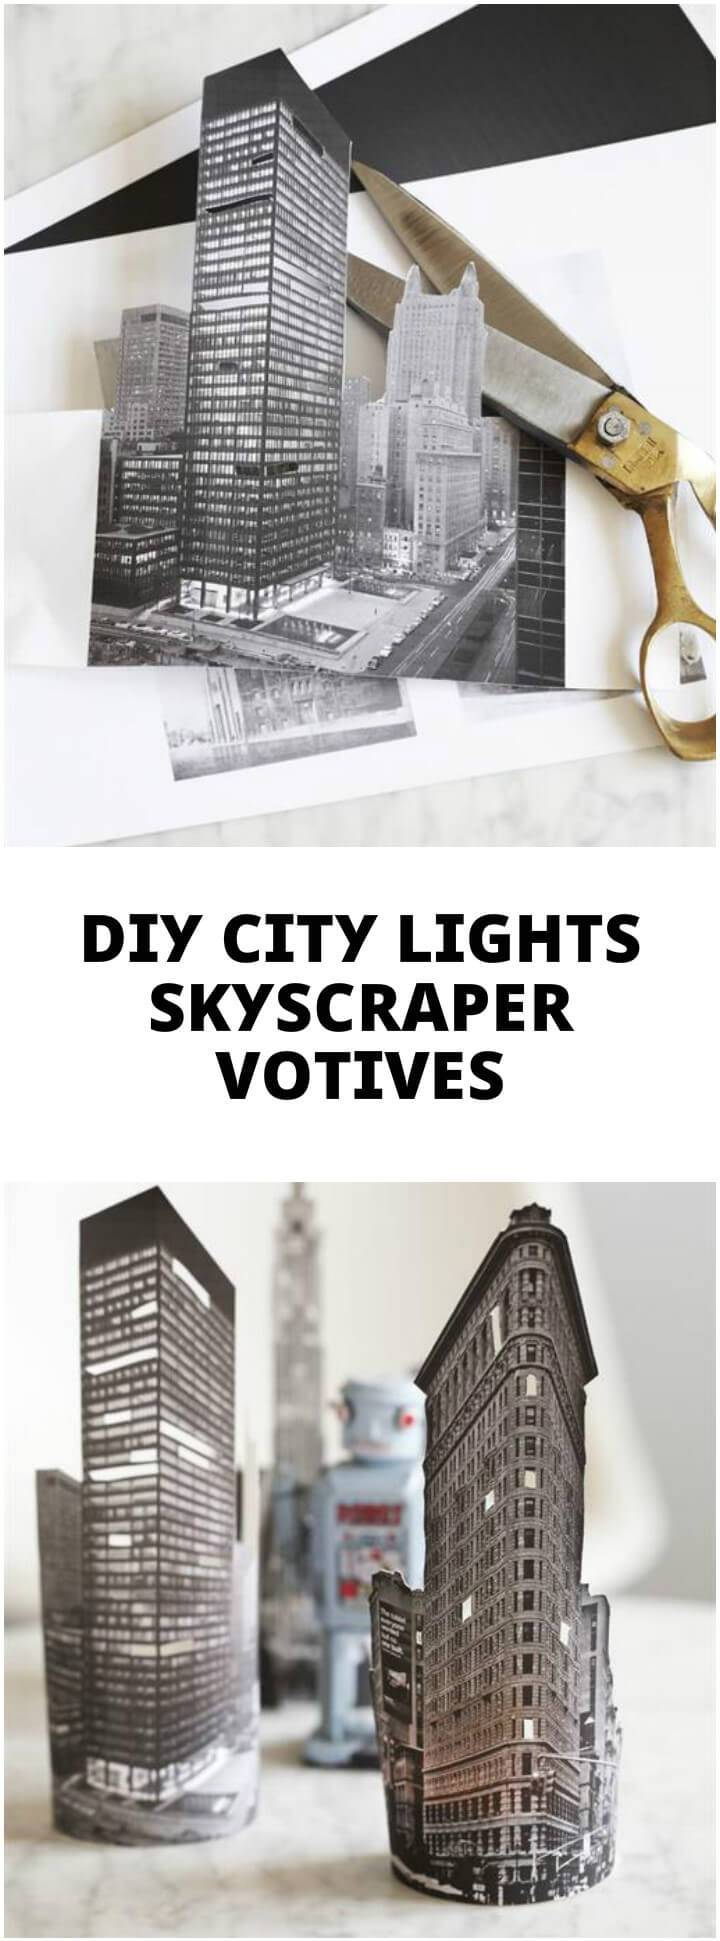 easy city lights skyscraper votives